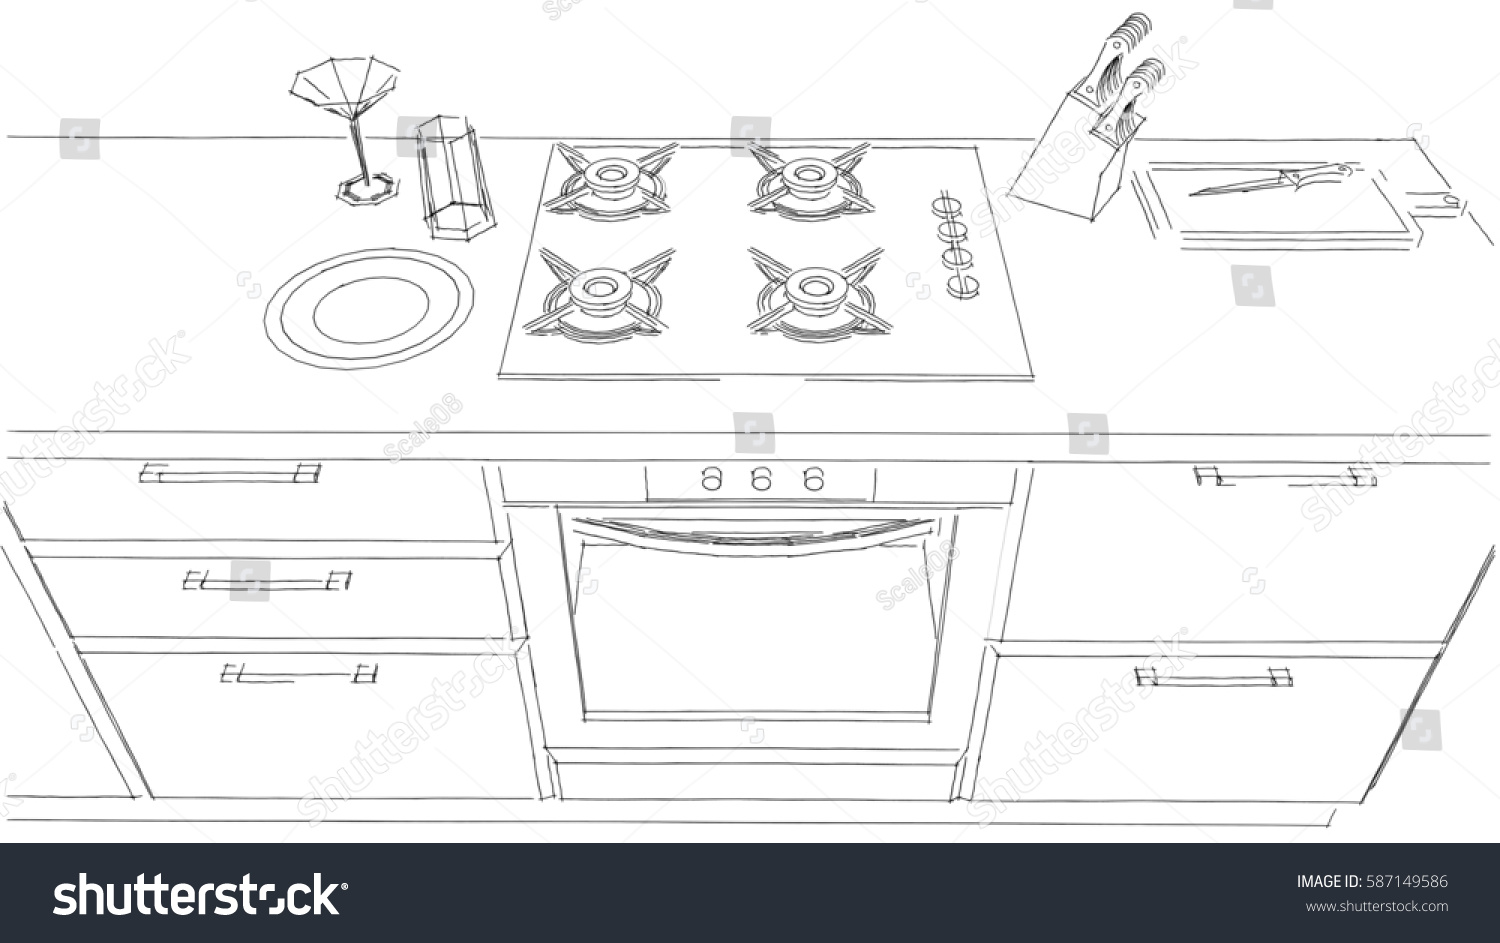 Sketch Drawing Of Built In Kitchen Stove And Oven Black White 3D Top